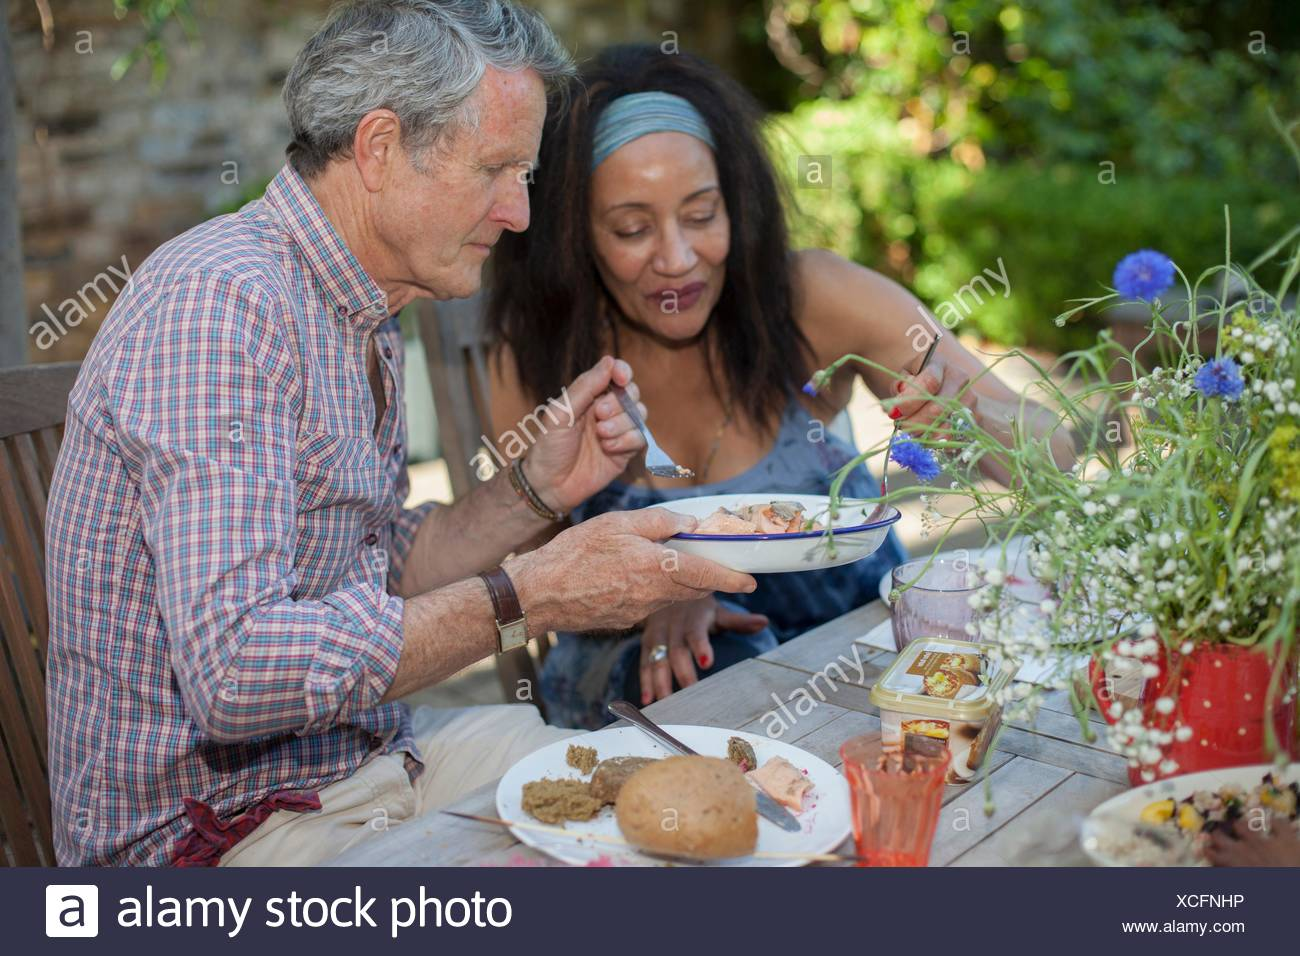 Senior couple eating meal outdoors Photo Stock